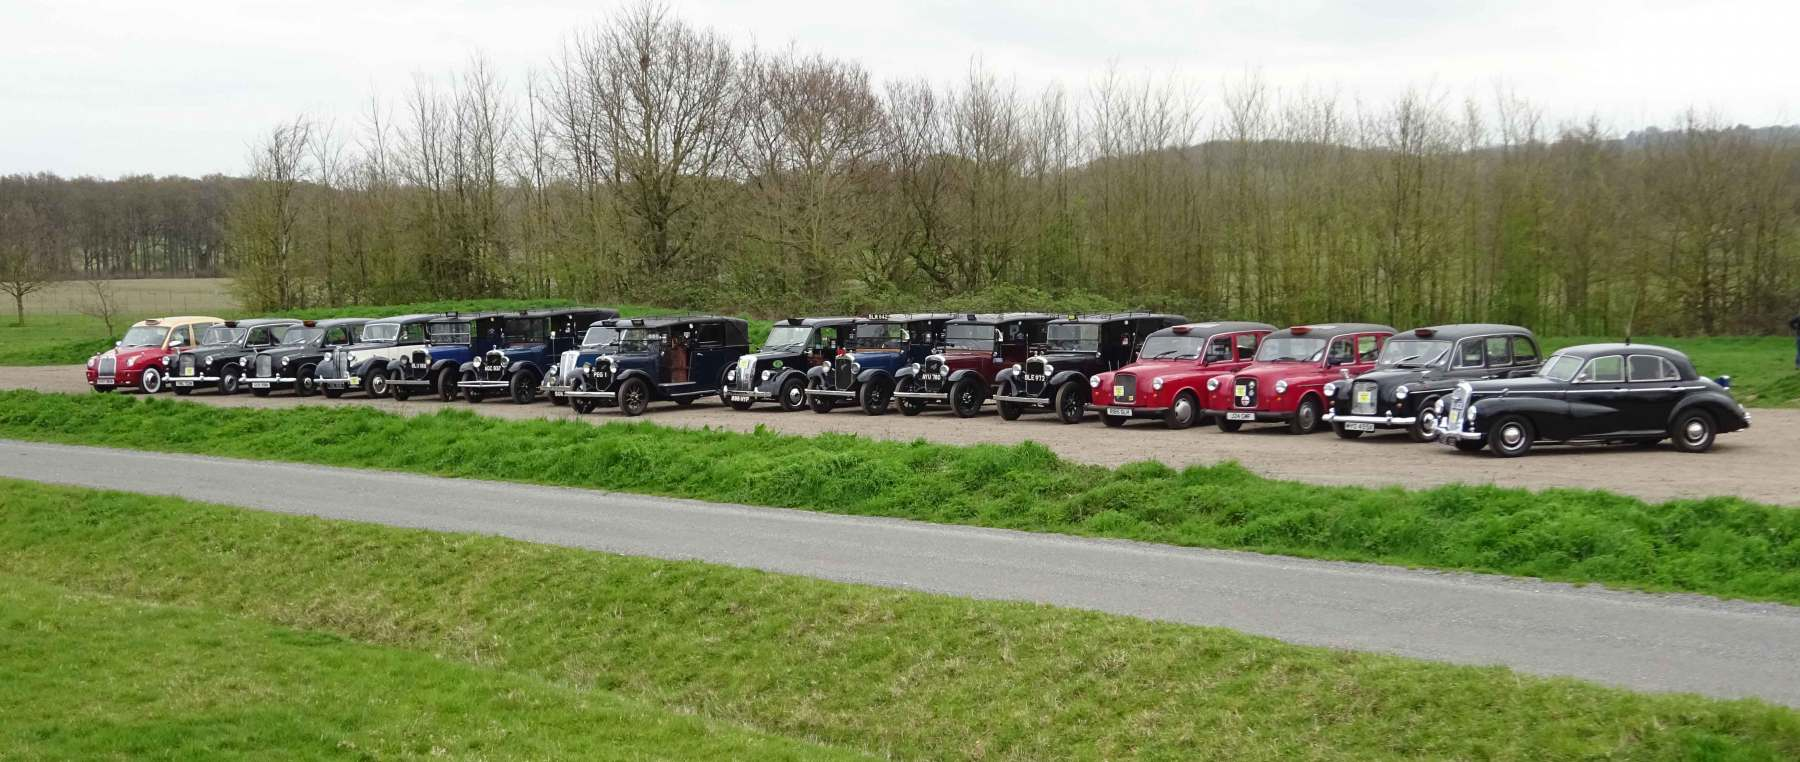 Carry on Cabby 2019  - lined up at the start